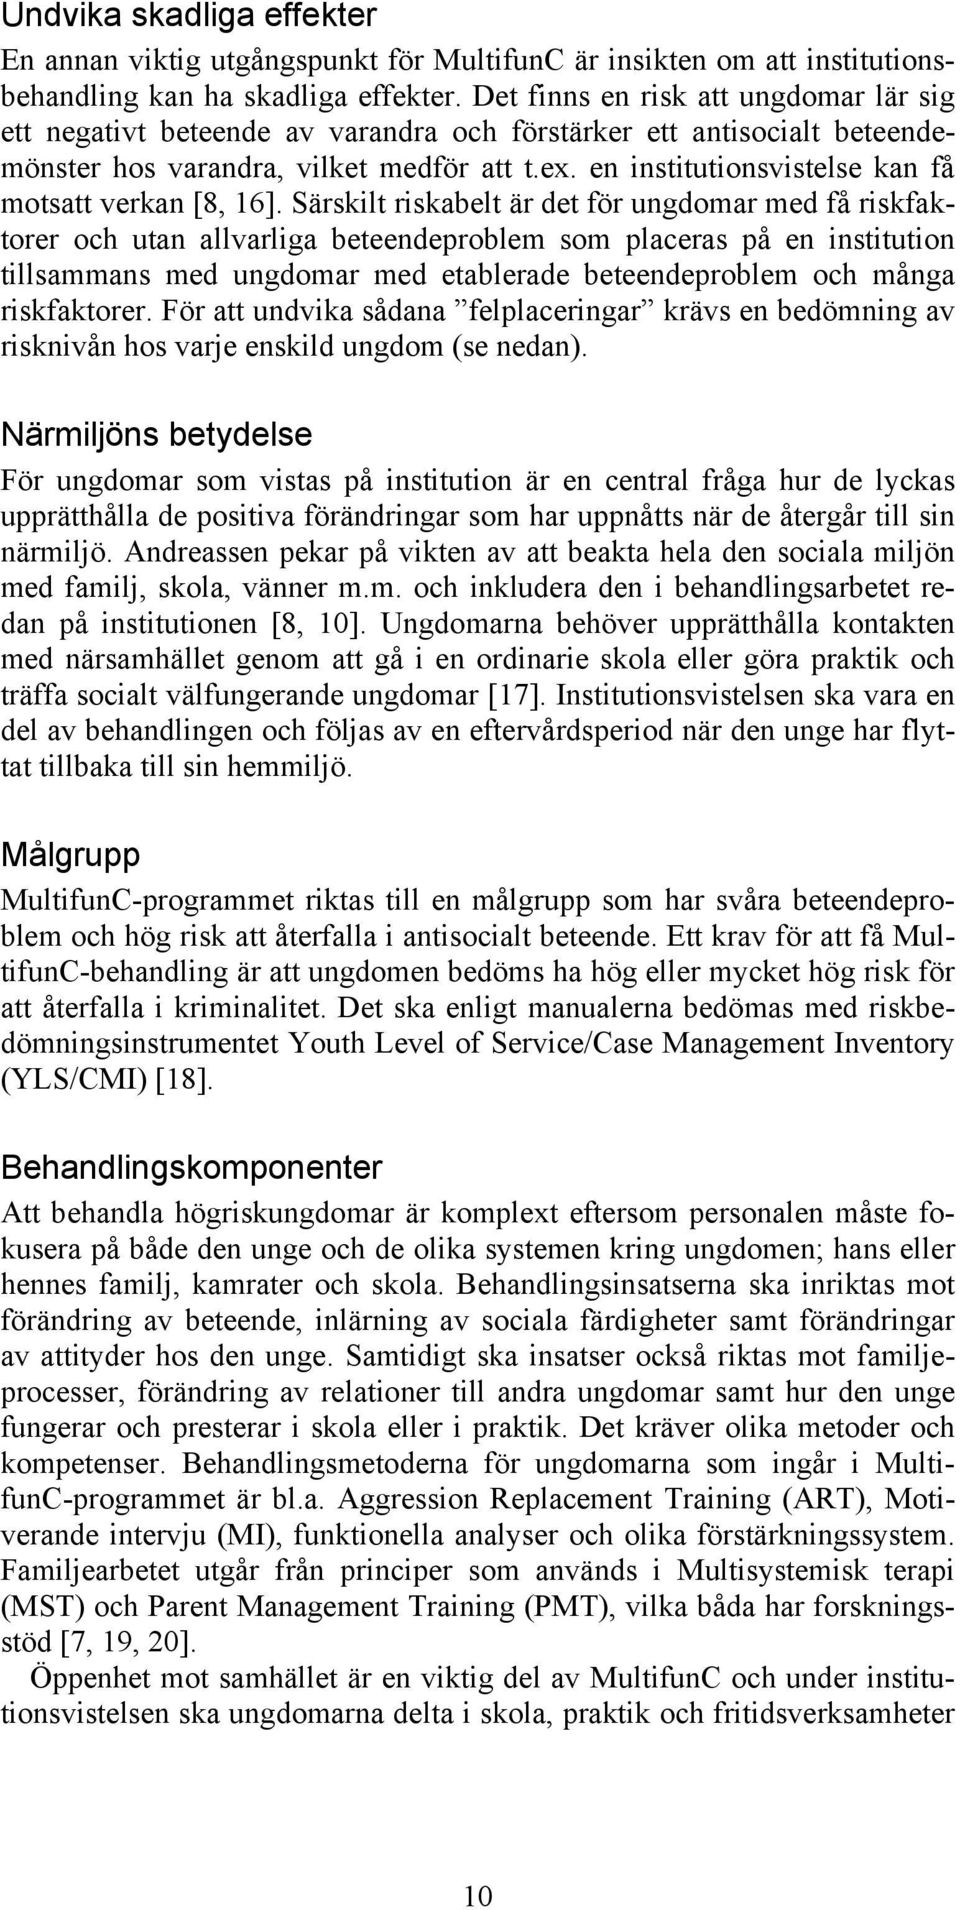 en institutionsvistelse kan få motsatt verkan [8, 16].